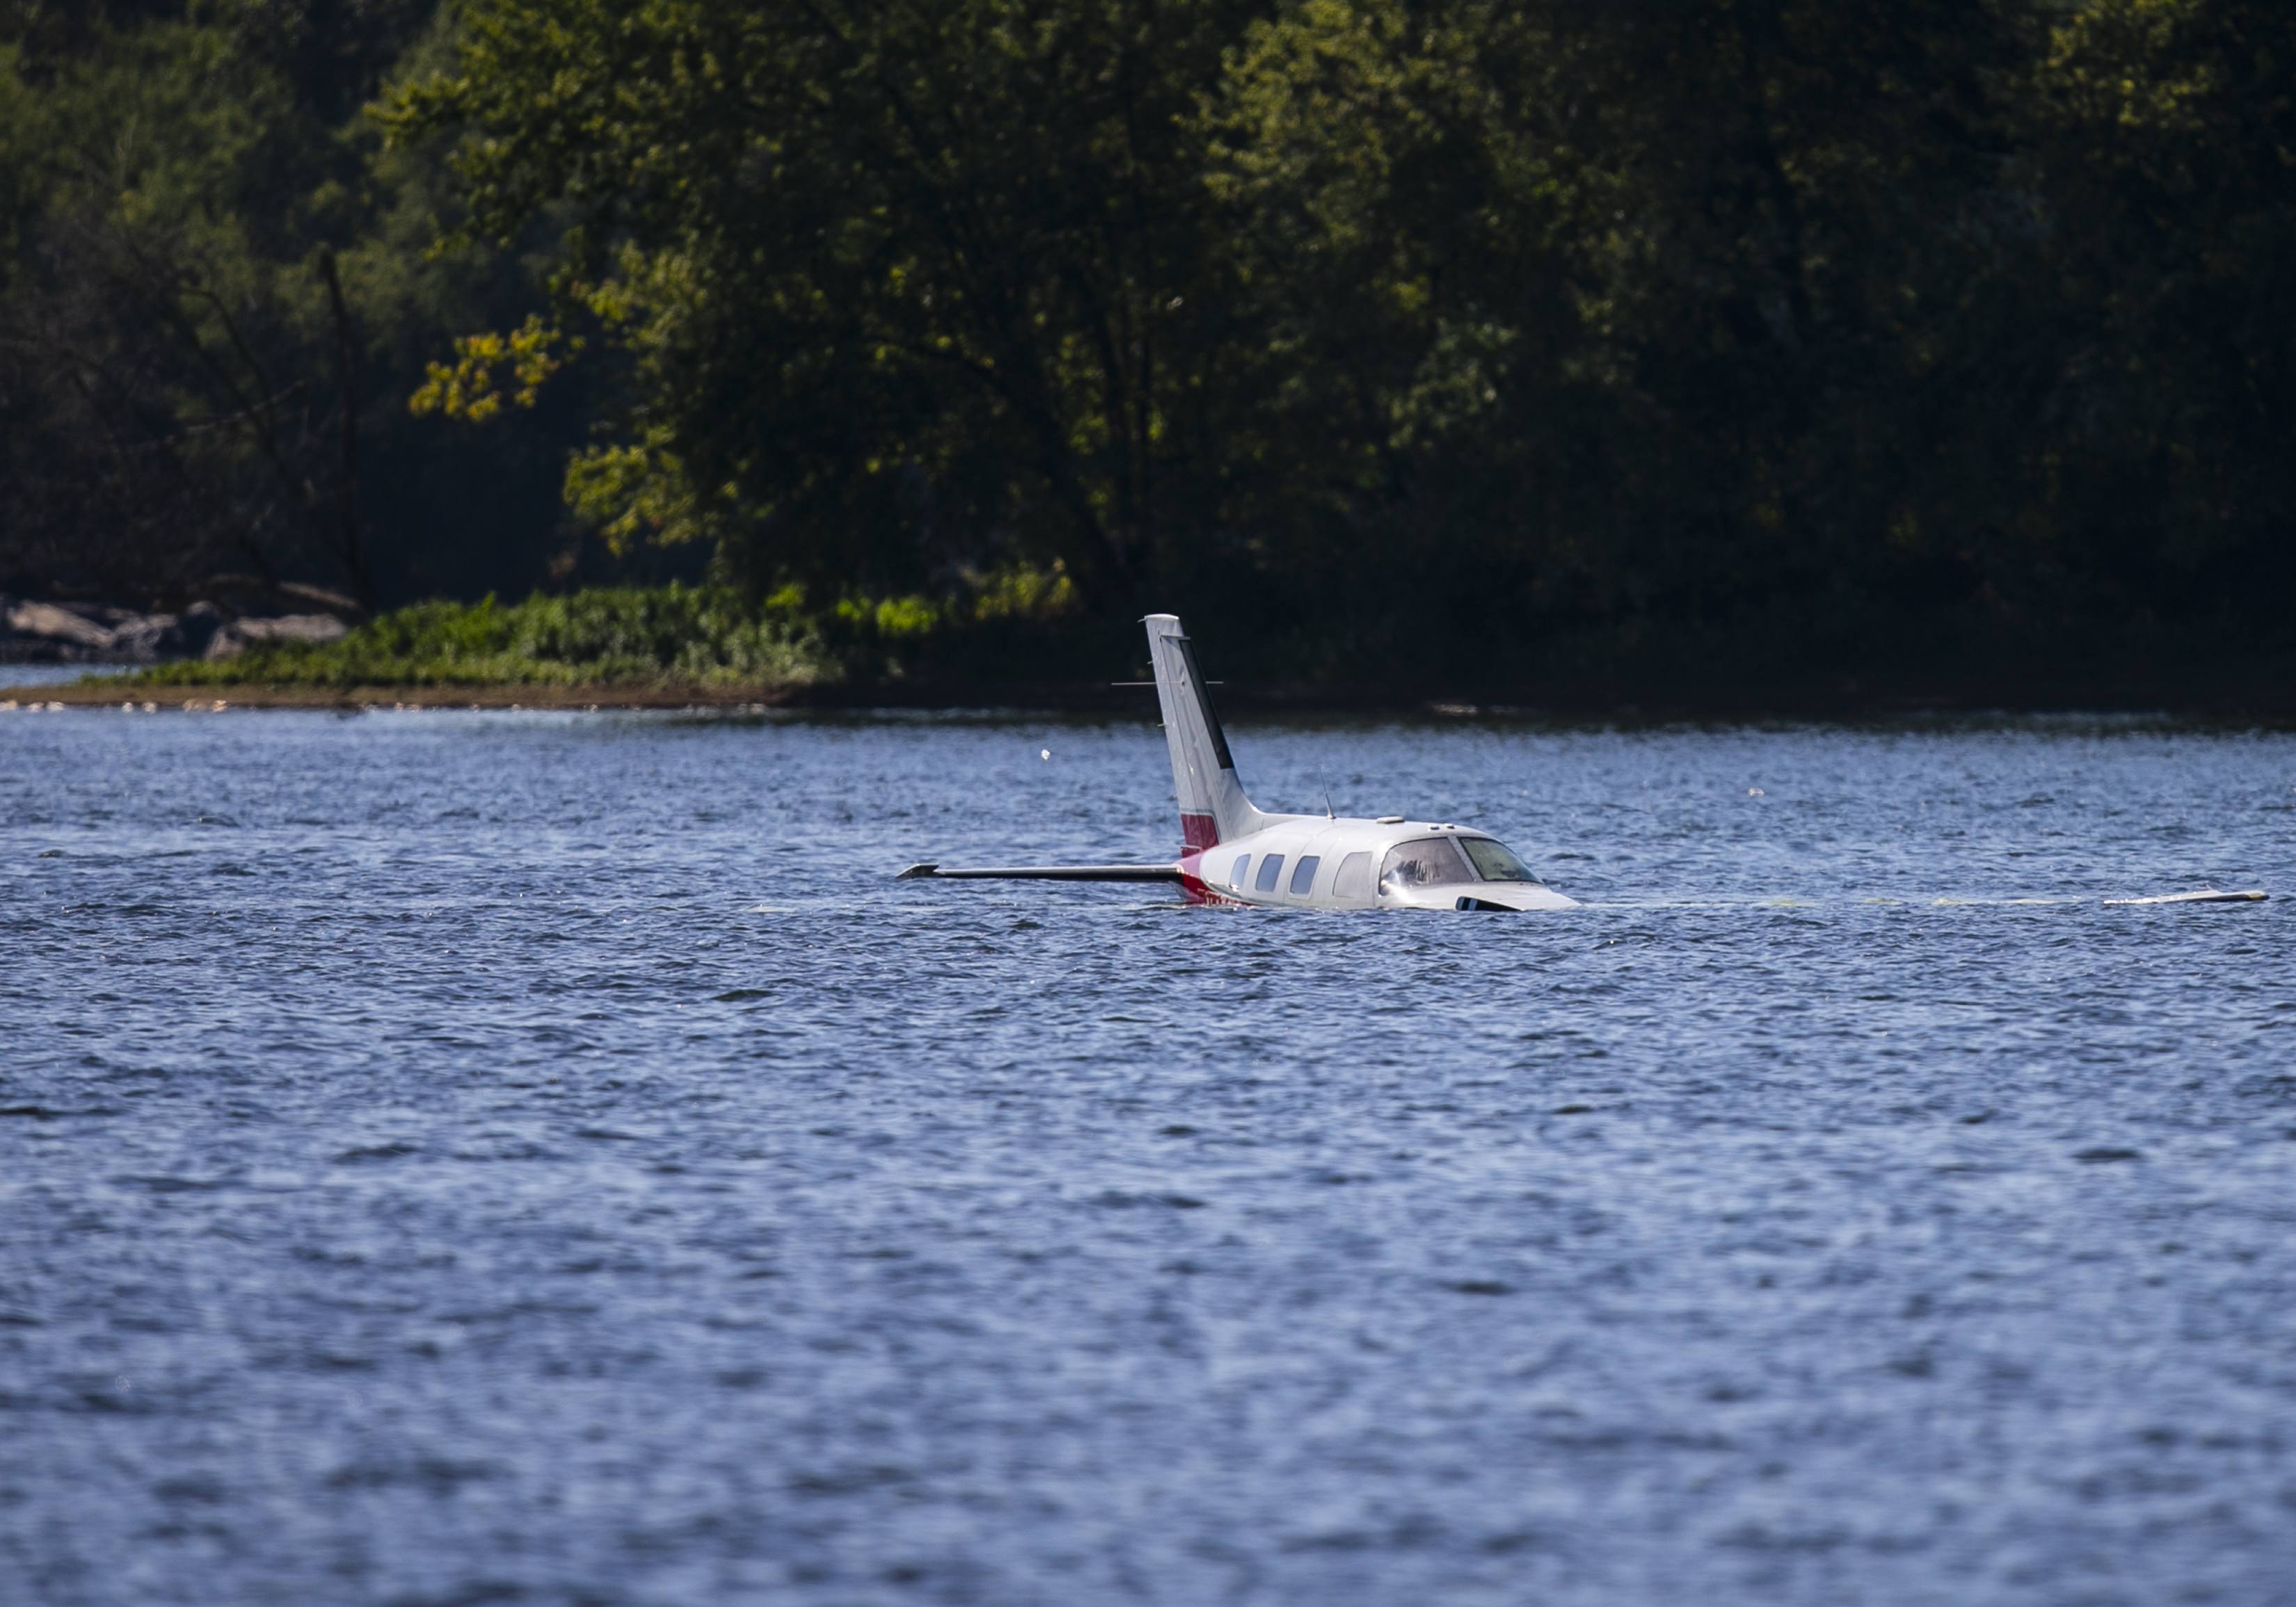 Training for emergency would have helped pilot in Susquehanna River crash landing